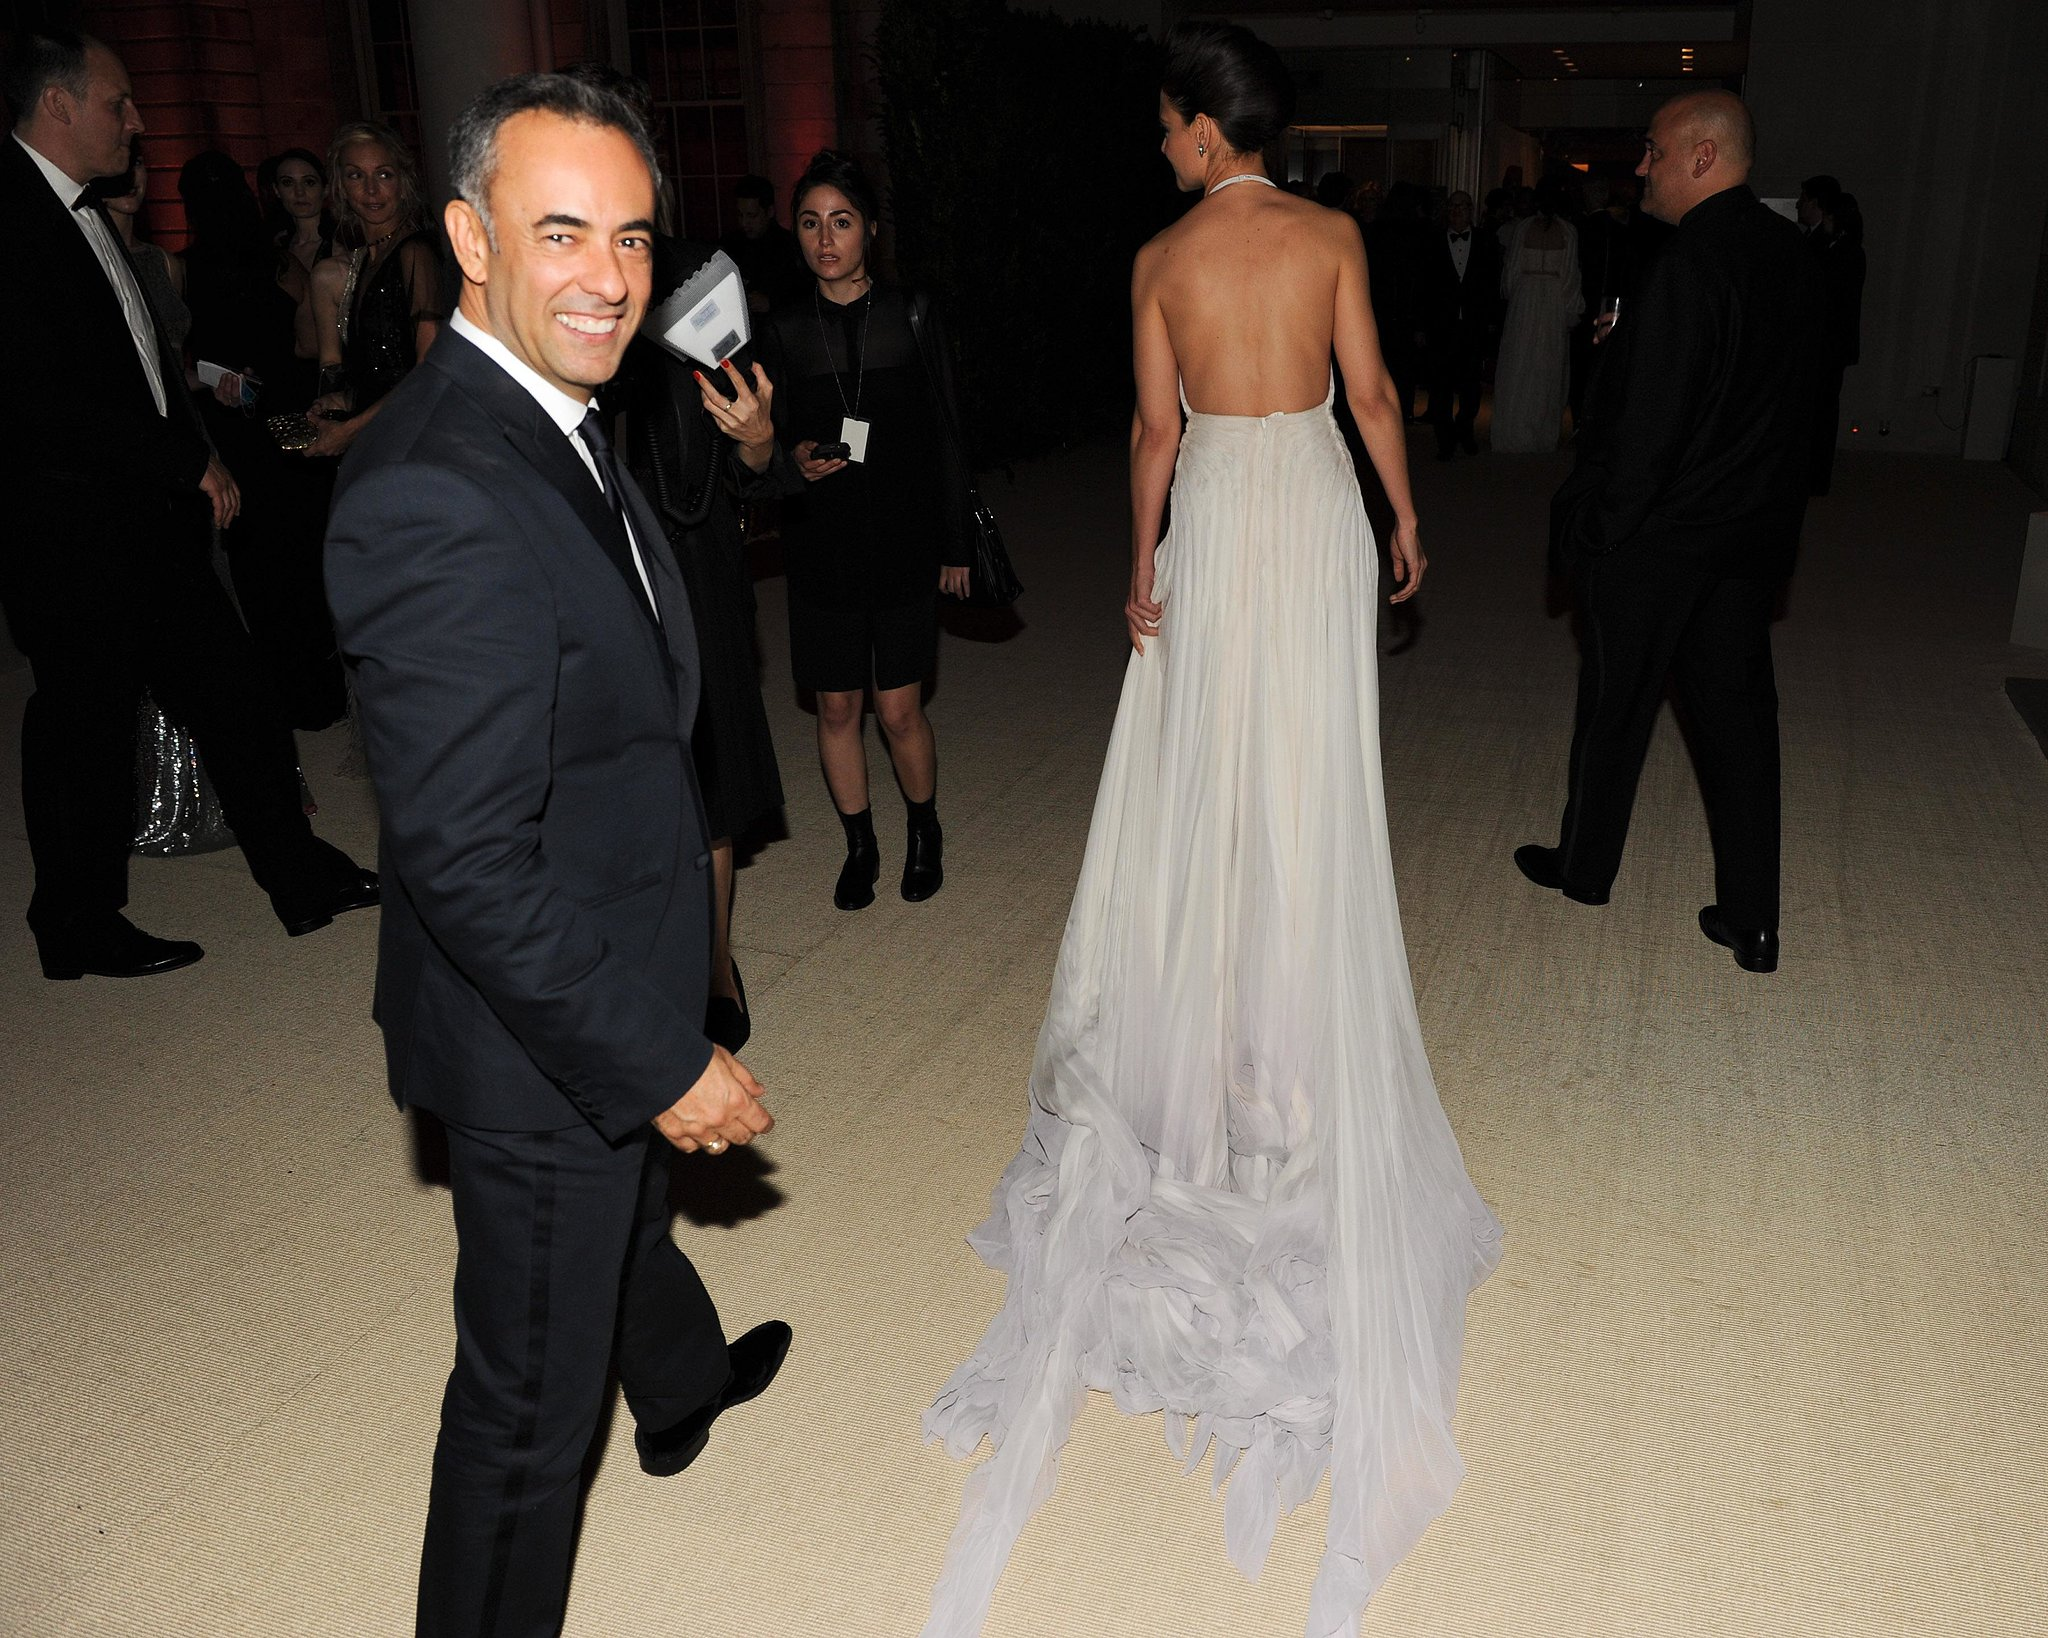 Francisco Costa followed Katie Holmes's train into the Met Gala dinner party. Source: Billy Farrell/BFANYC.com